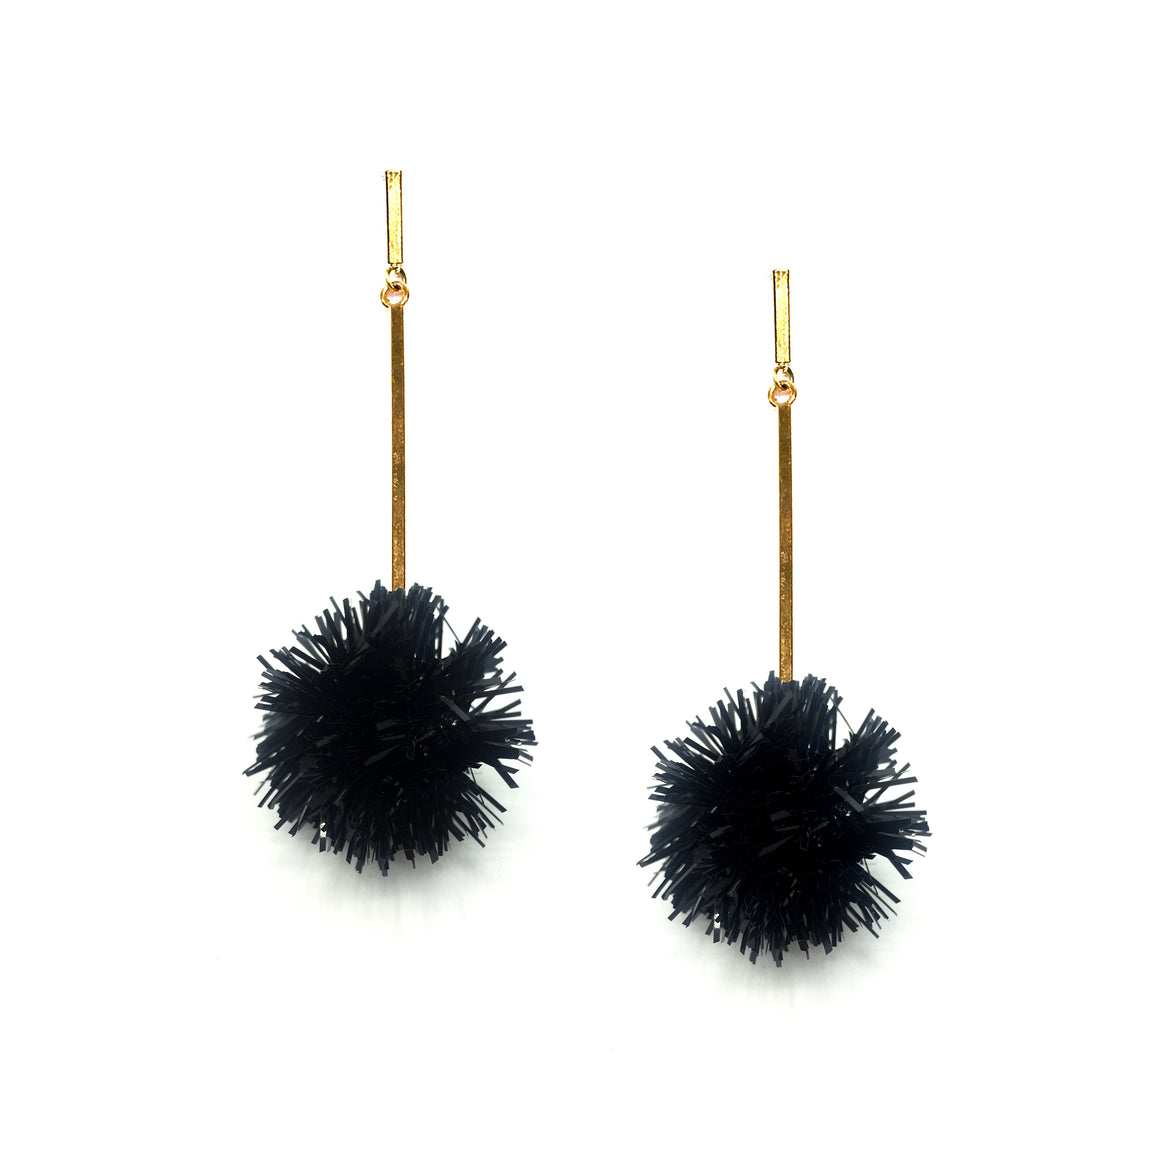 "1"" Black Lurex Pom Pom Earrings"